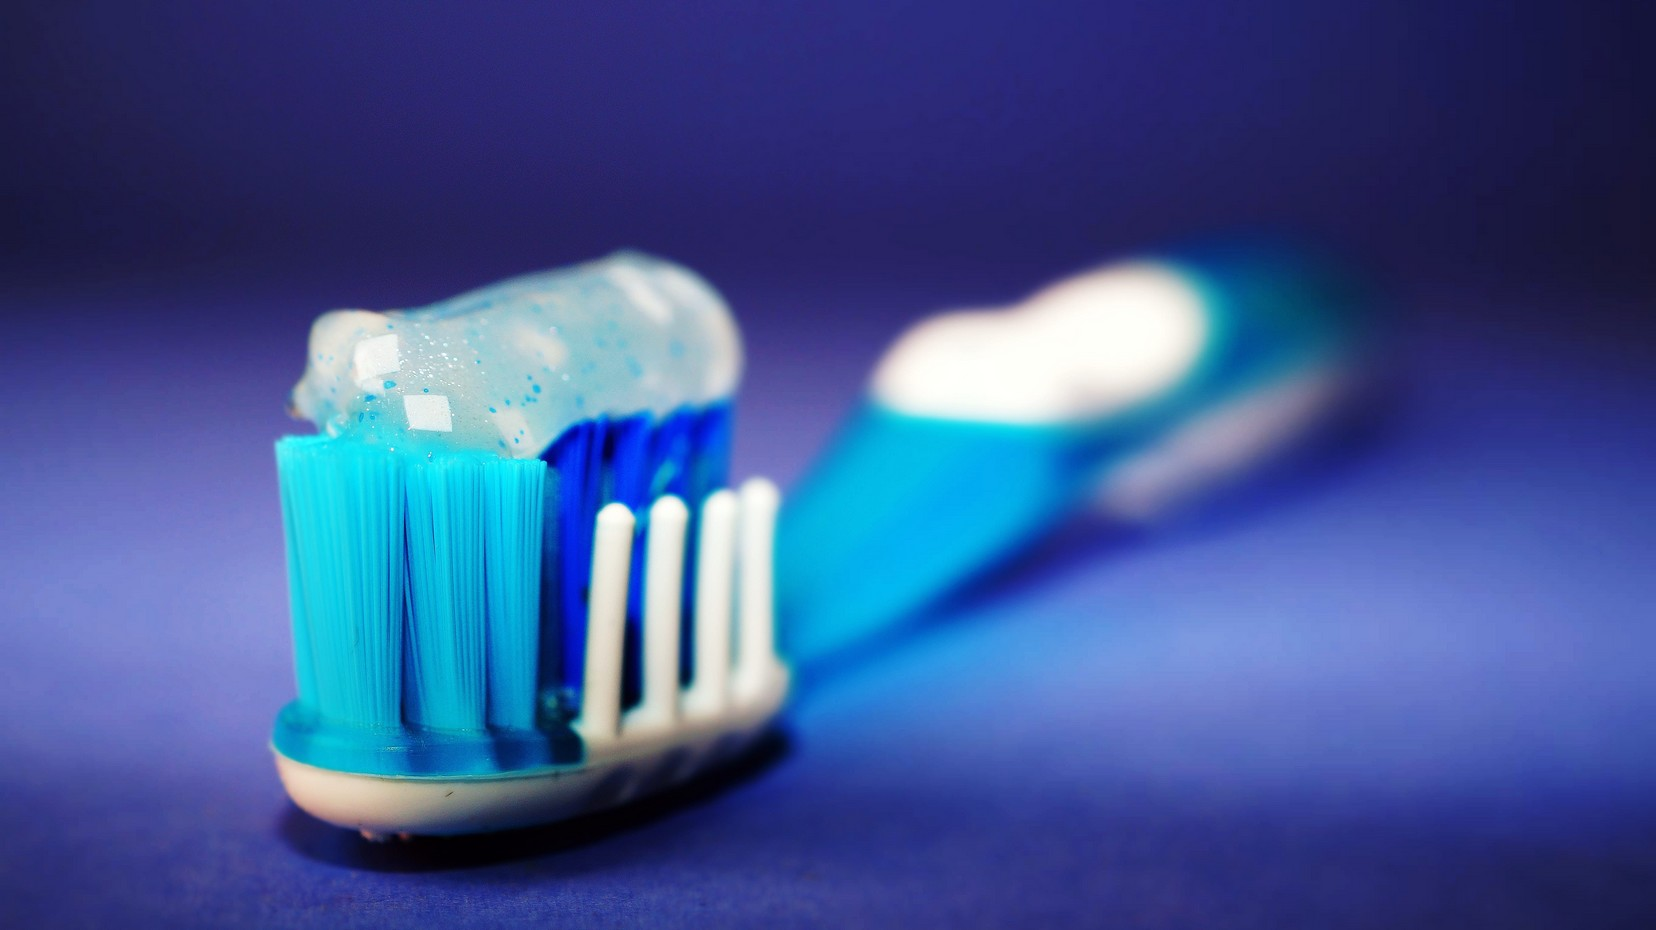 blue toothbrush with clear toothpaste on, with a blue background.